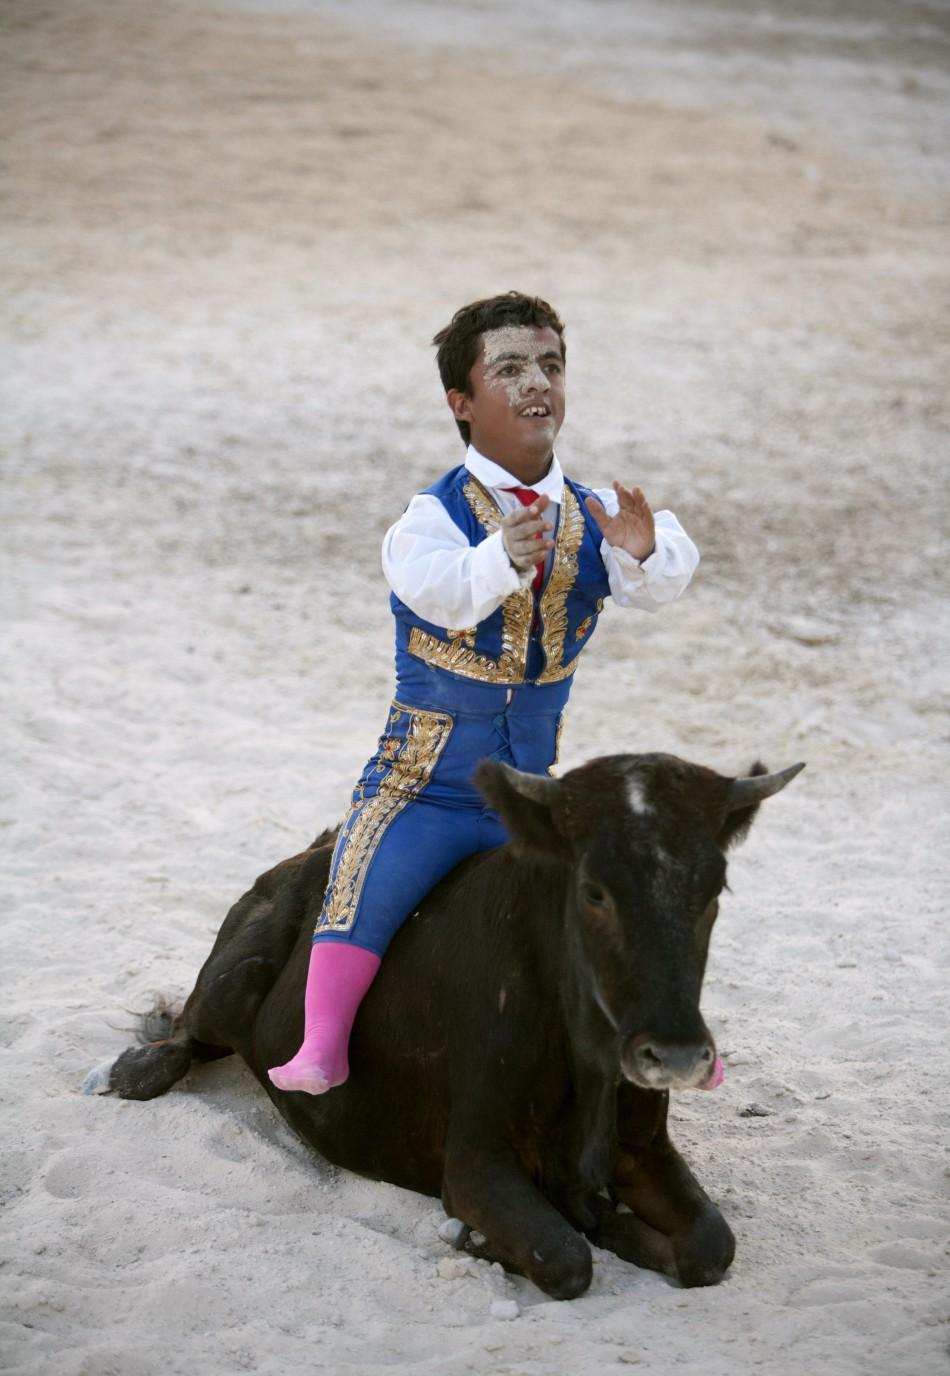 Dwarf bullfighter Jorge Vega from Los Enanitos Toreros sits on a calf at the end of a presentation in Cancun